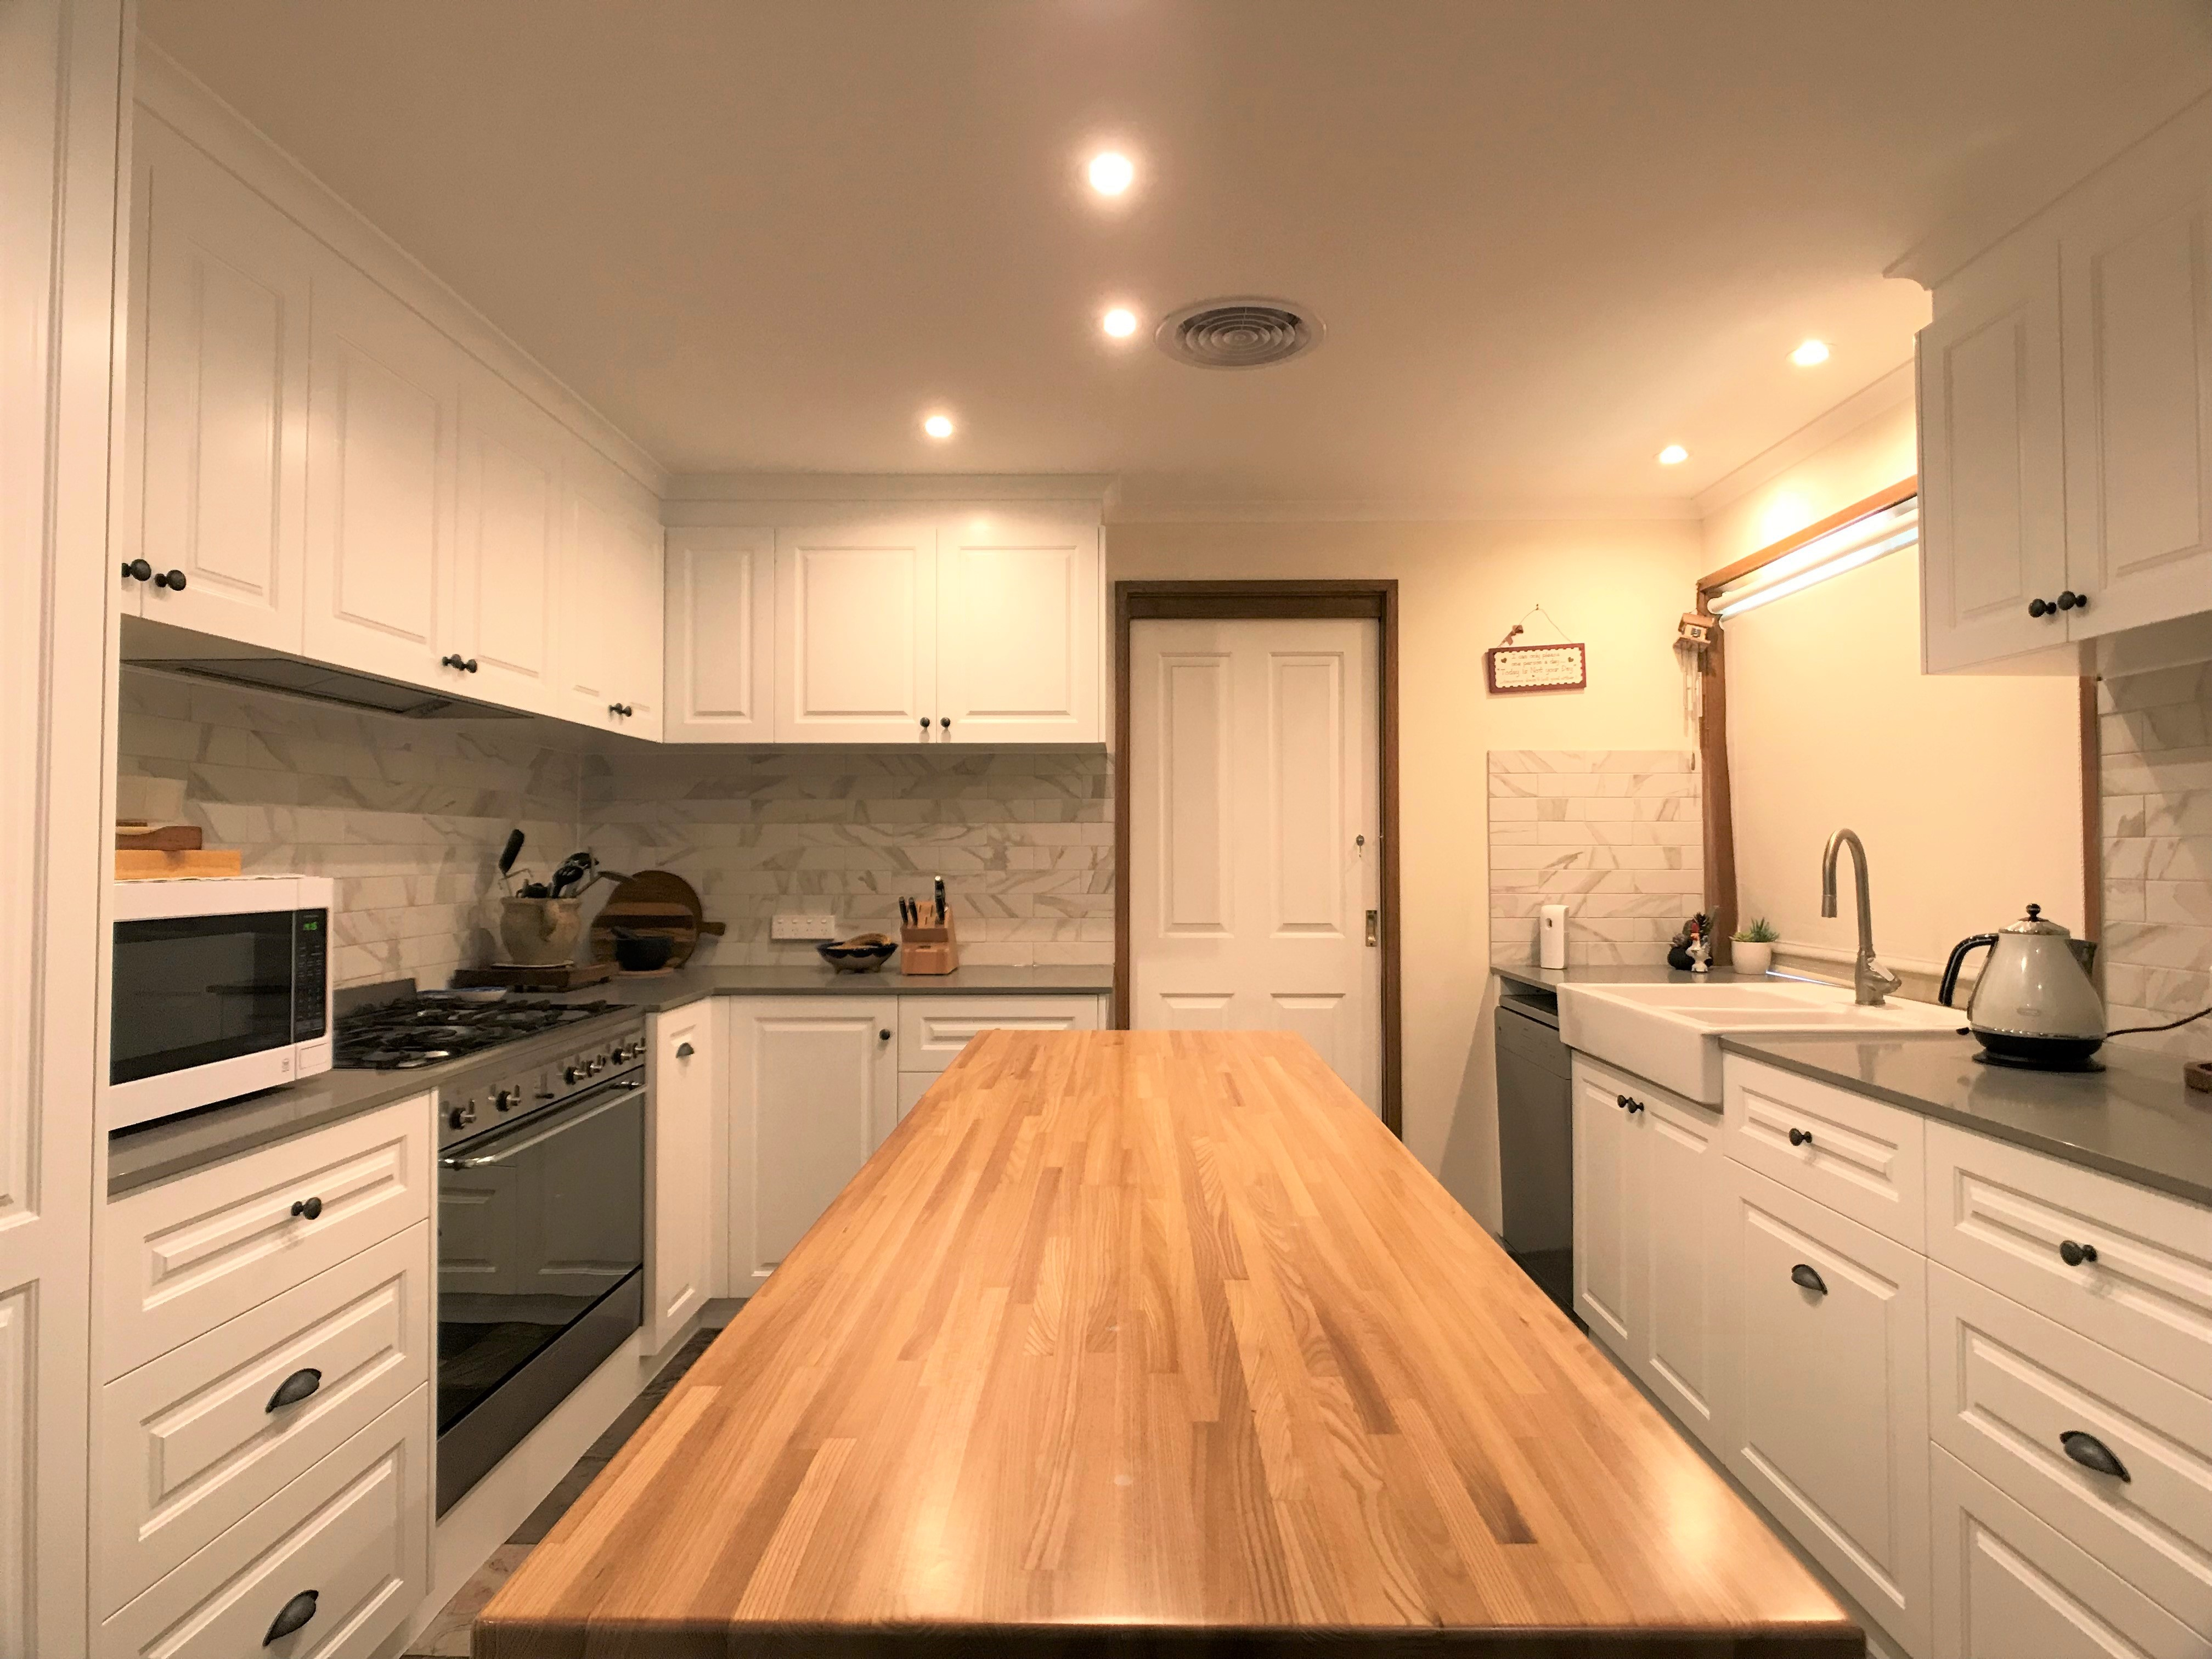 Kitchen with white walls,shelves and timber benchtop at the center.